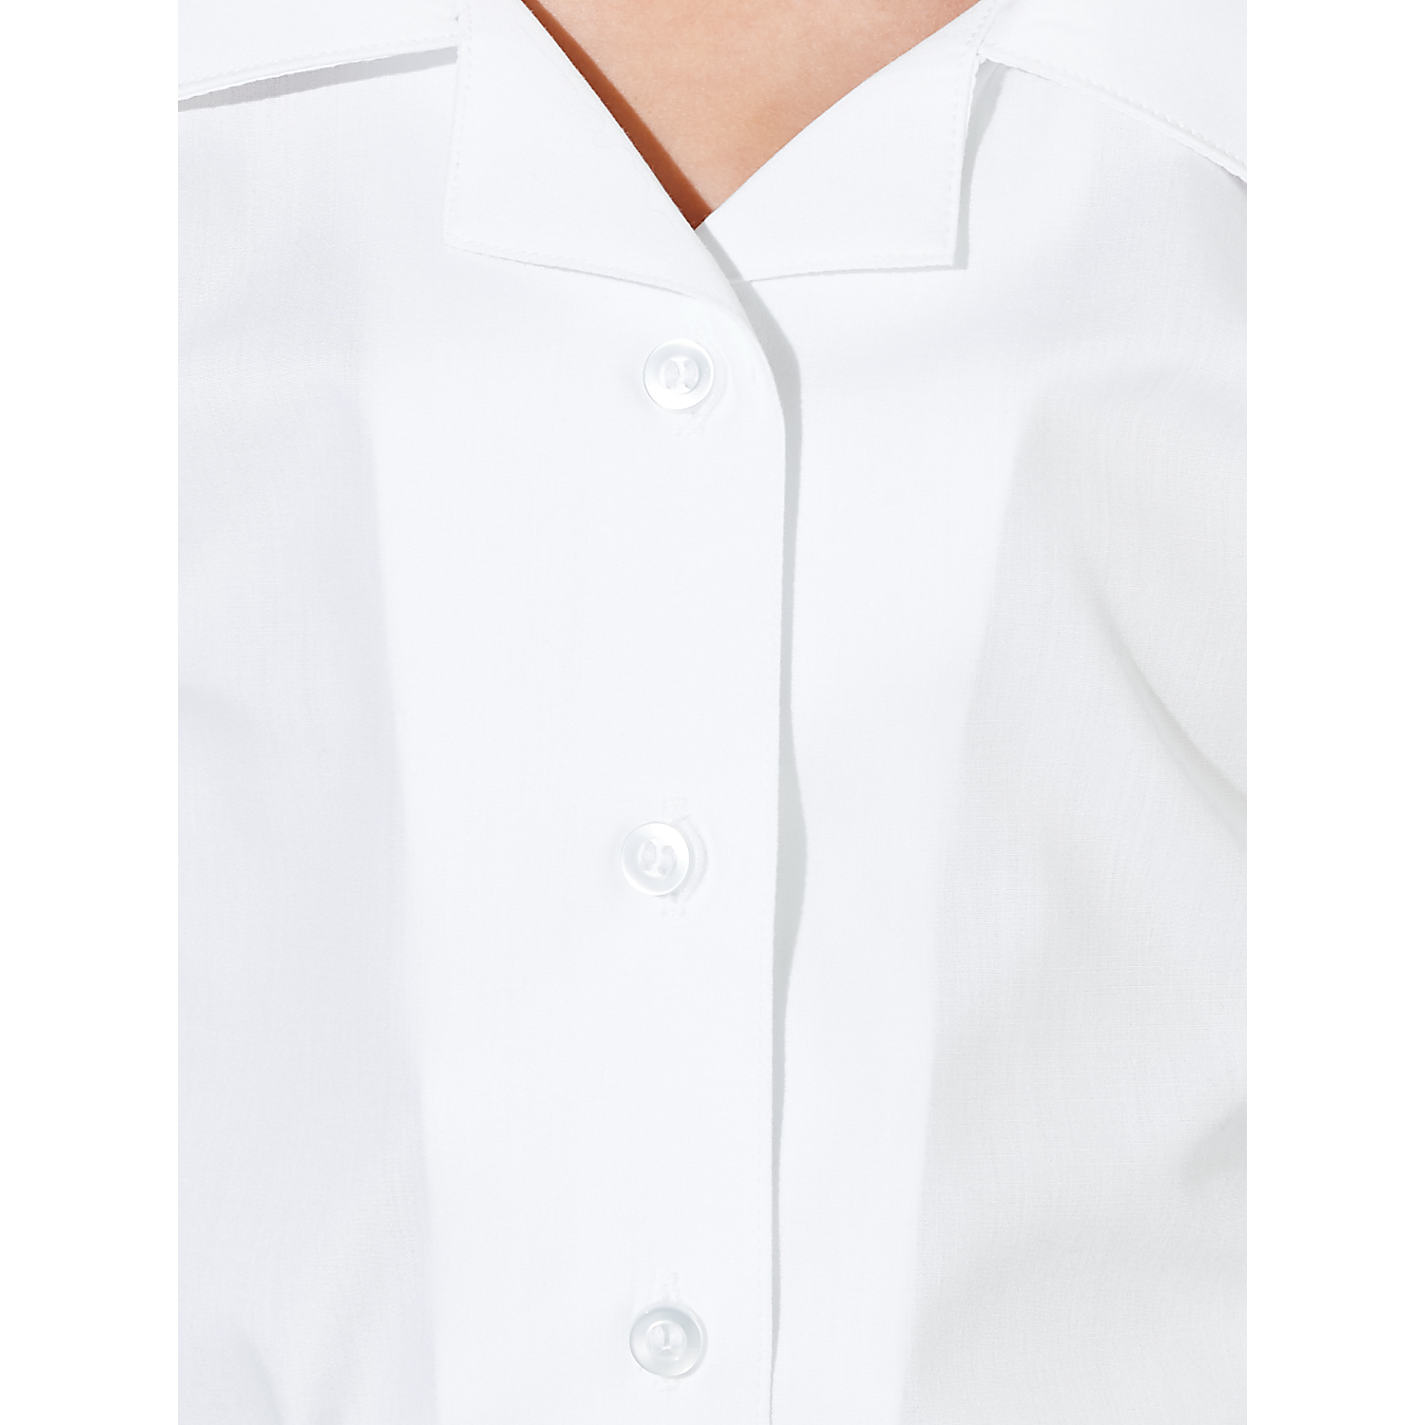 Girls White School Short Sleeve Open Neck Blouse 2 Pack | School ...